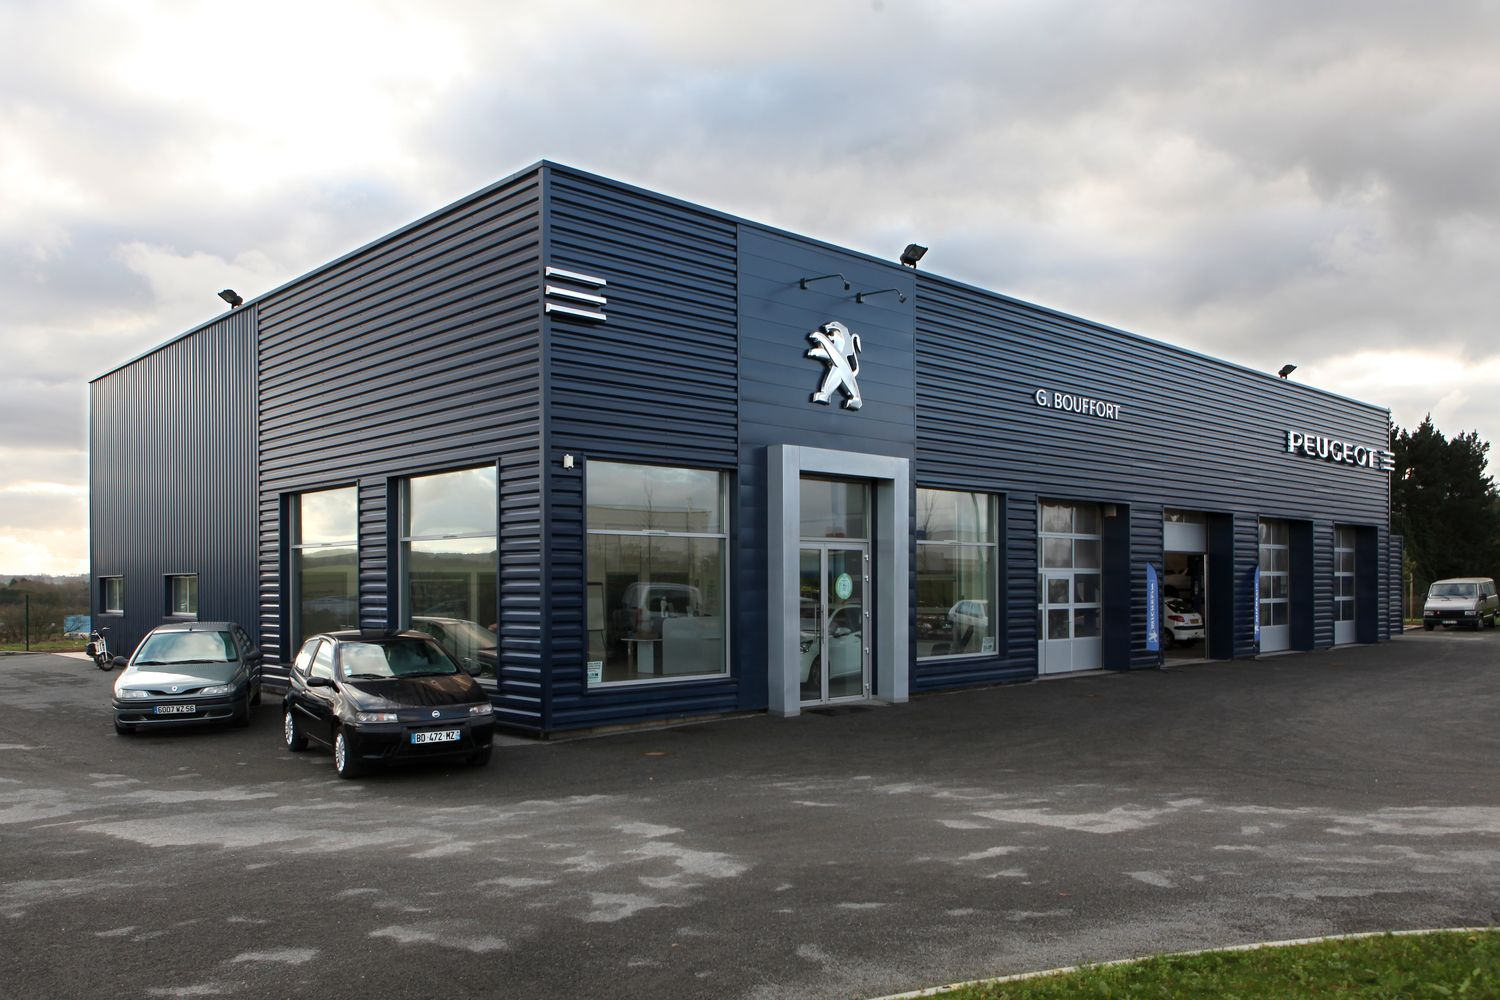 Ace ing nierie abc contractant r alisations peugeot for Garage peugeot cabailh plaisir